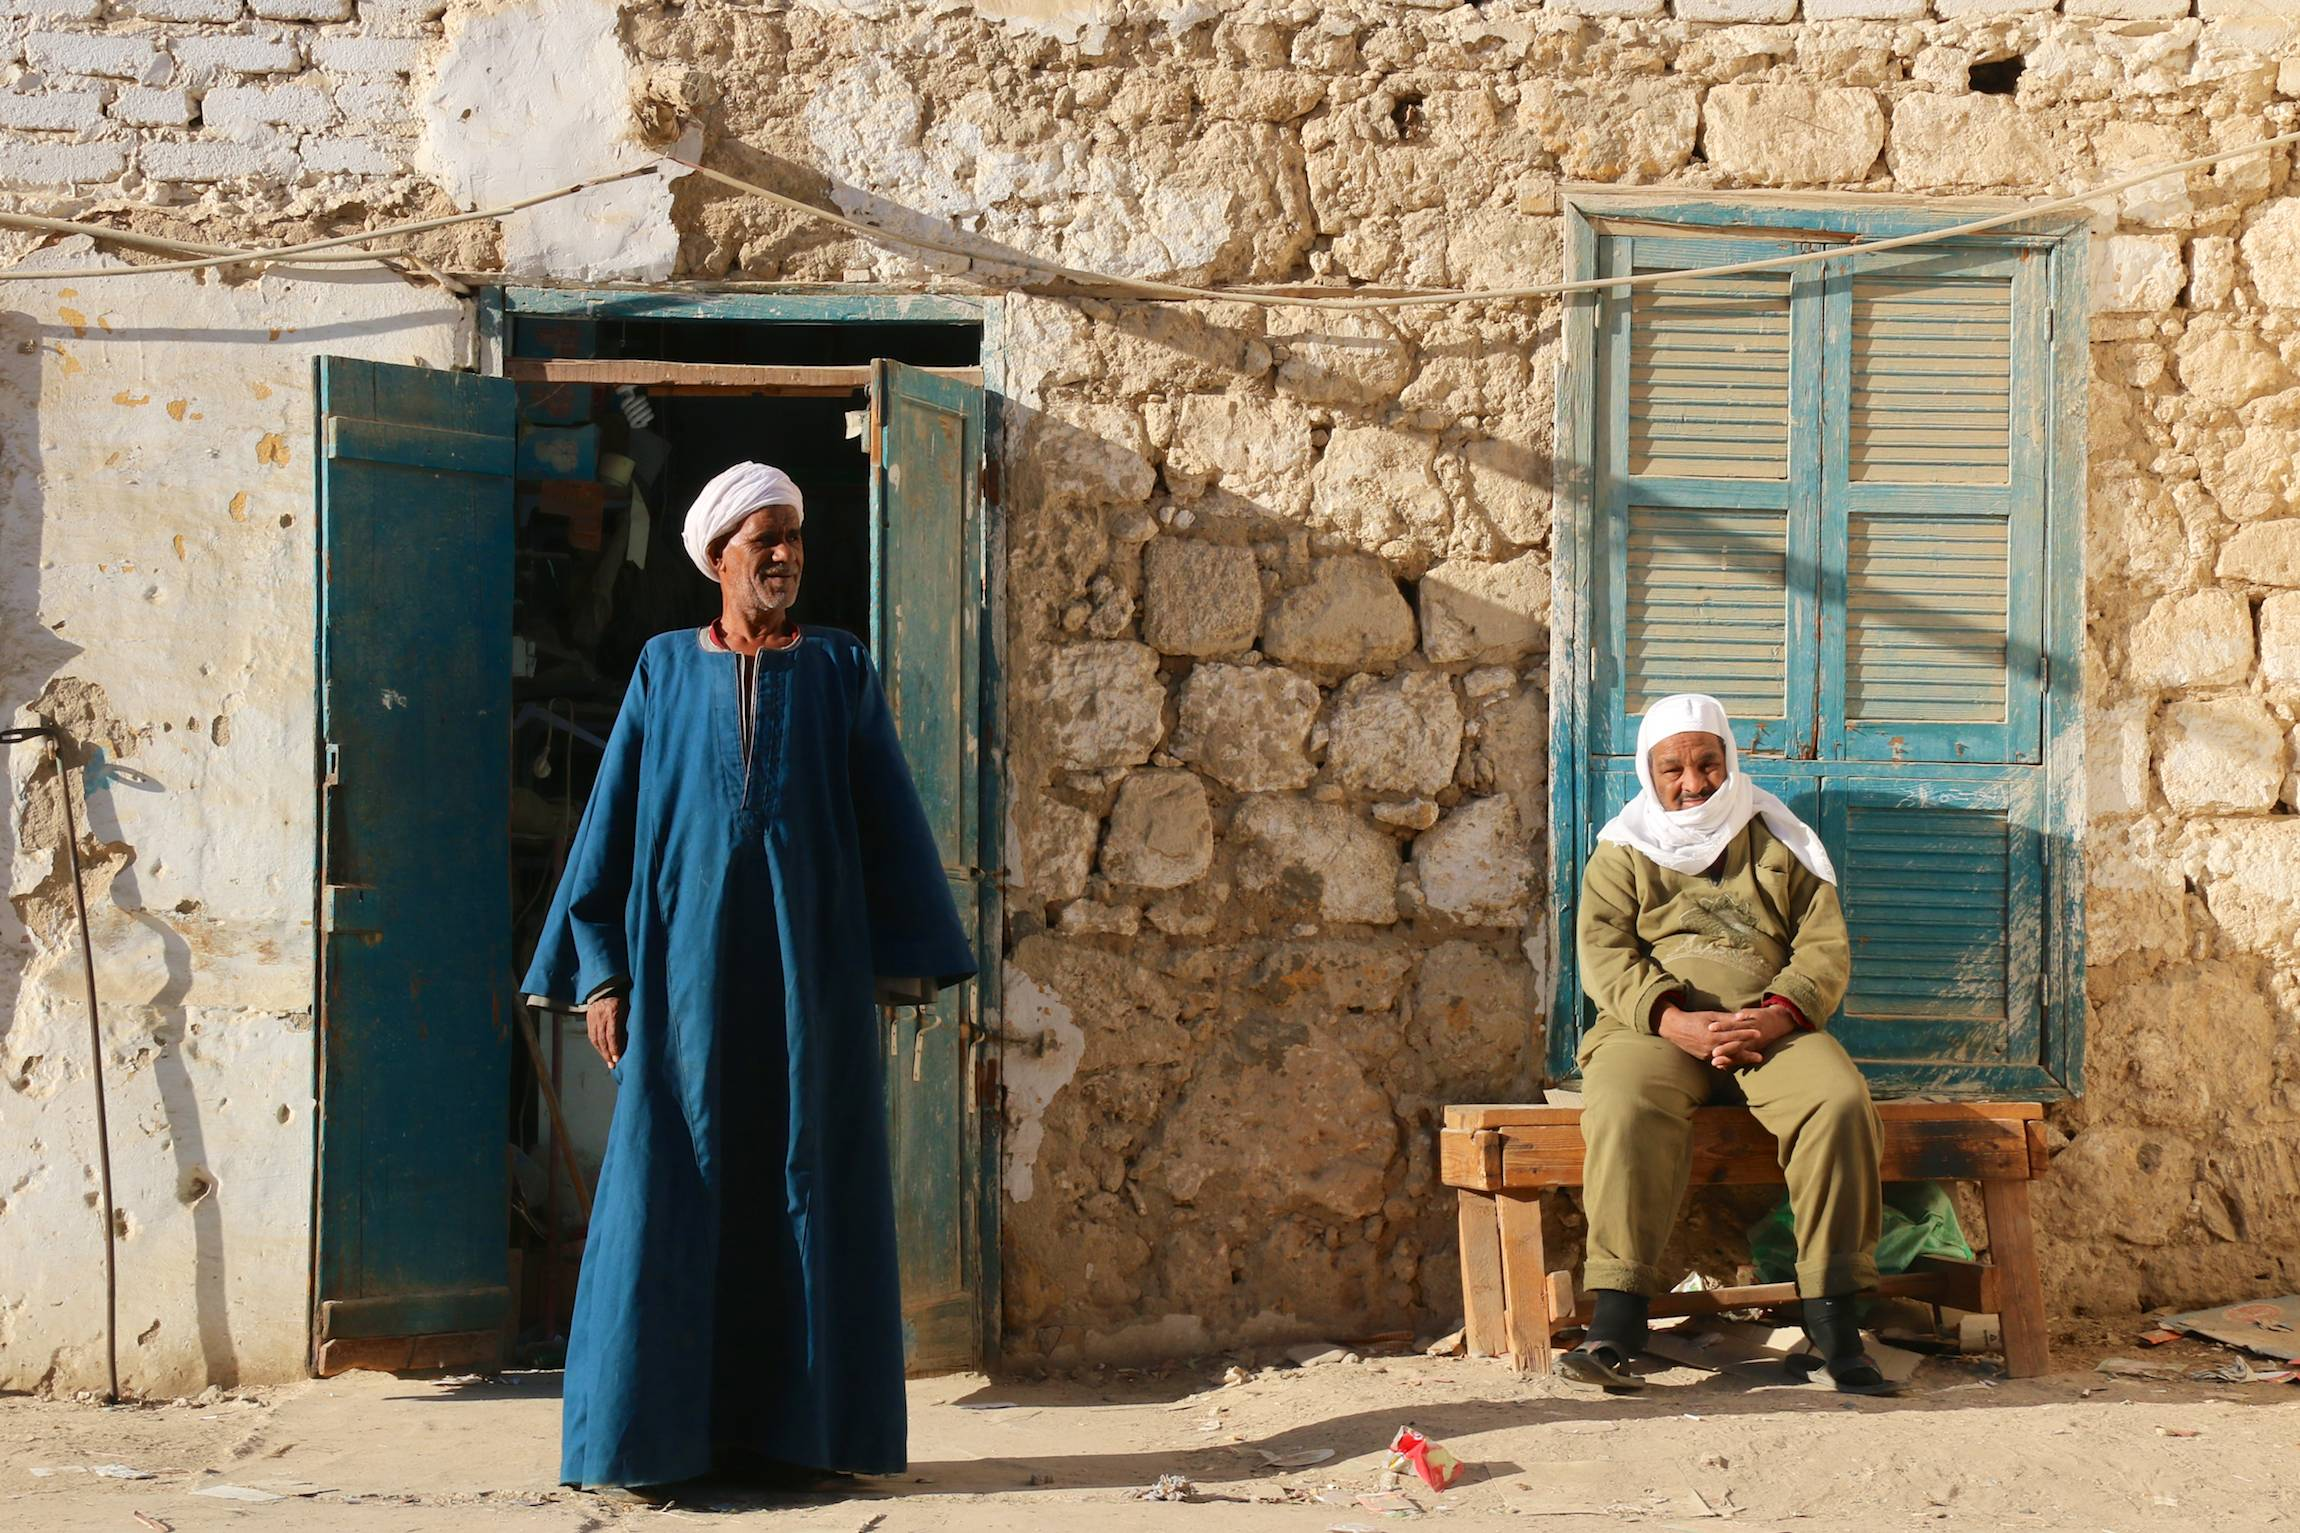 Men stand and sit in front of a house in El Quseir, Egypt, Jan. 8, 2014.